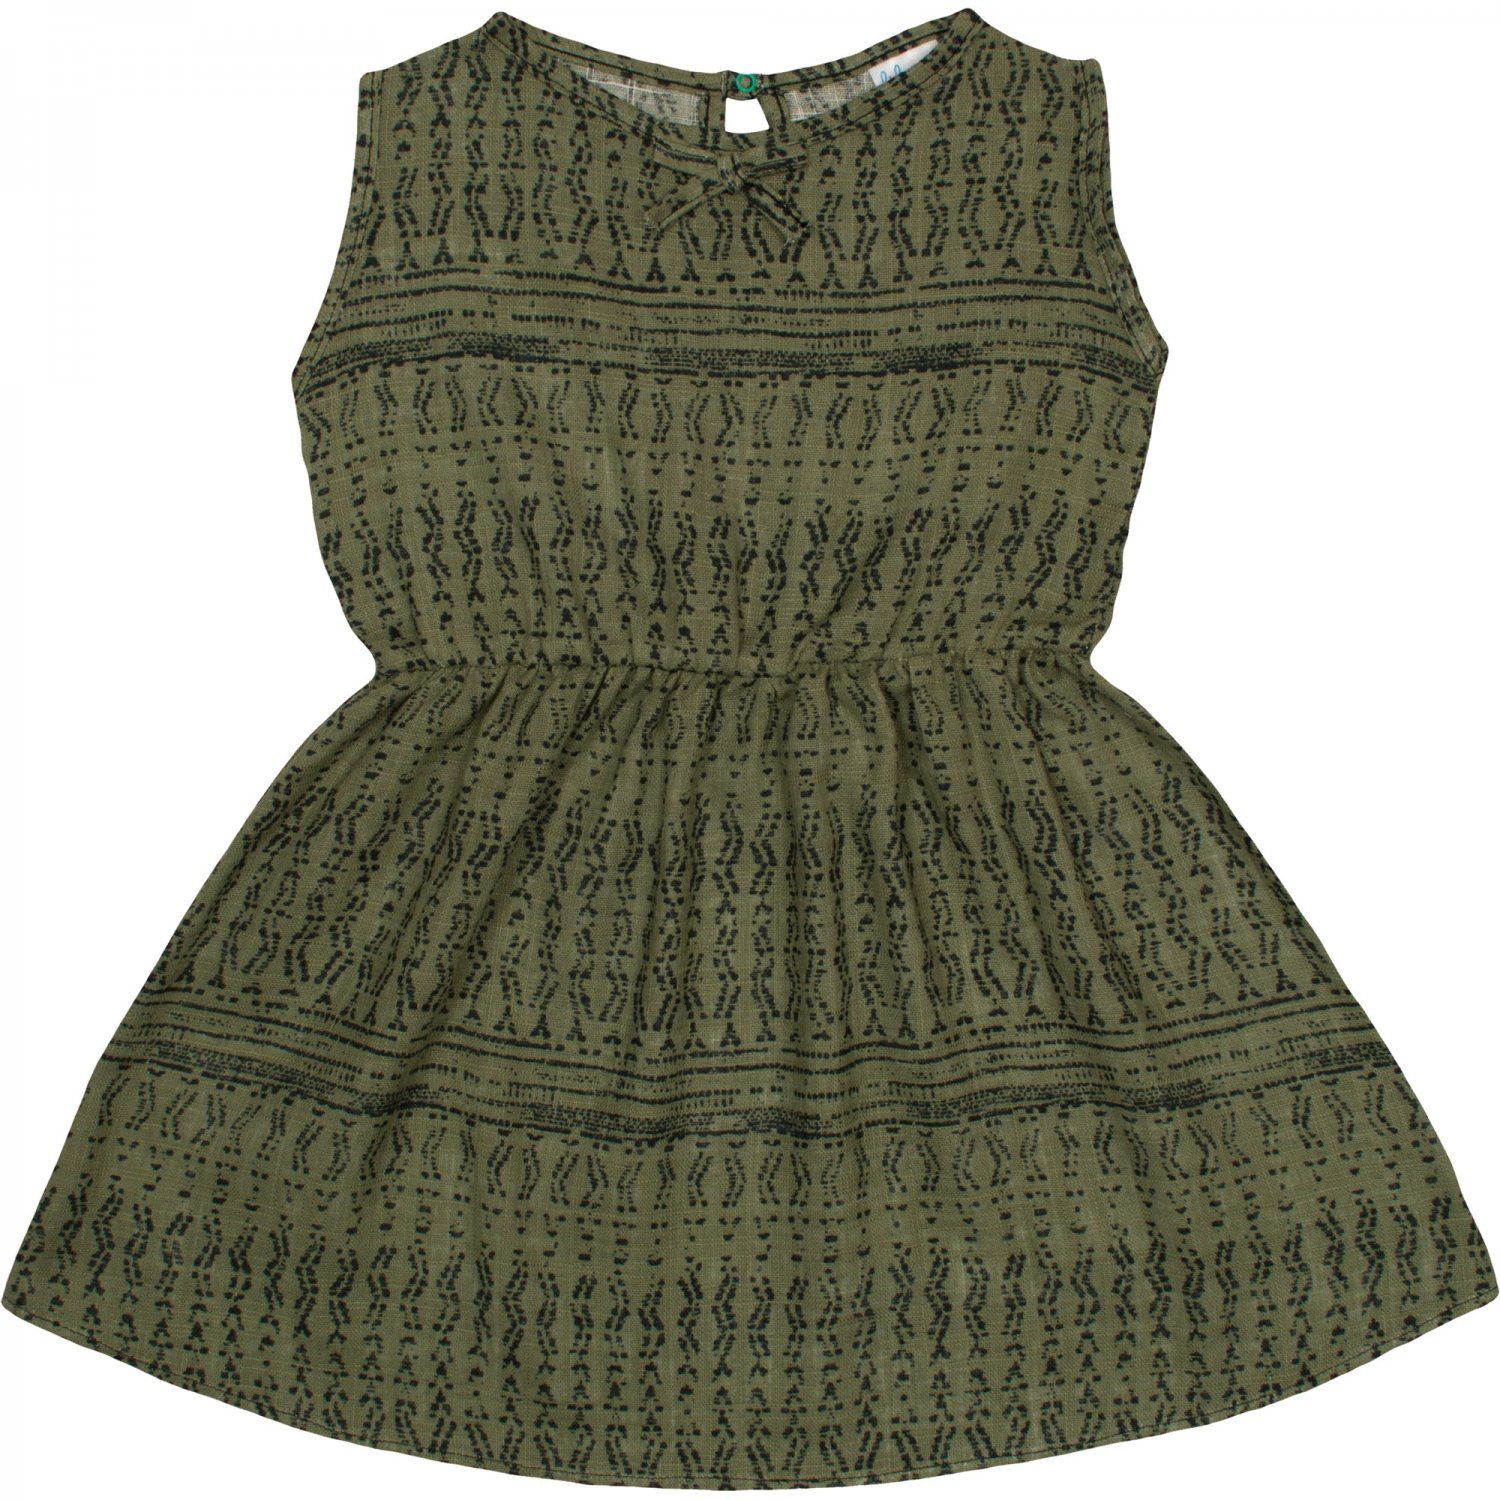 Out Of Stock Olive green summer dress with grey traditional styled allover print - liloo